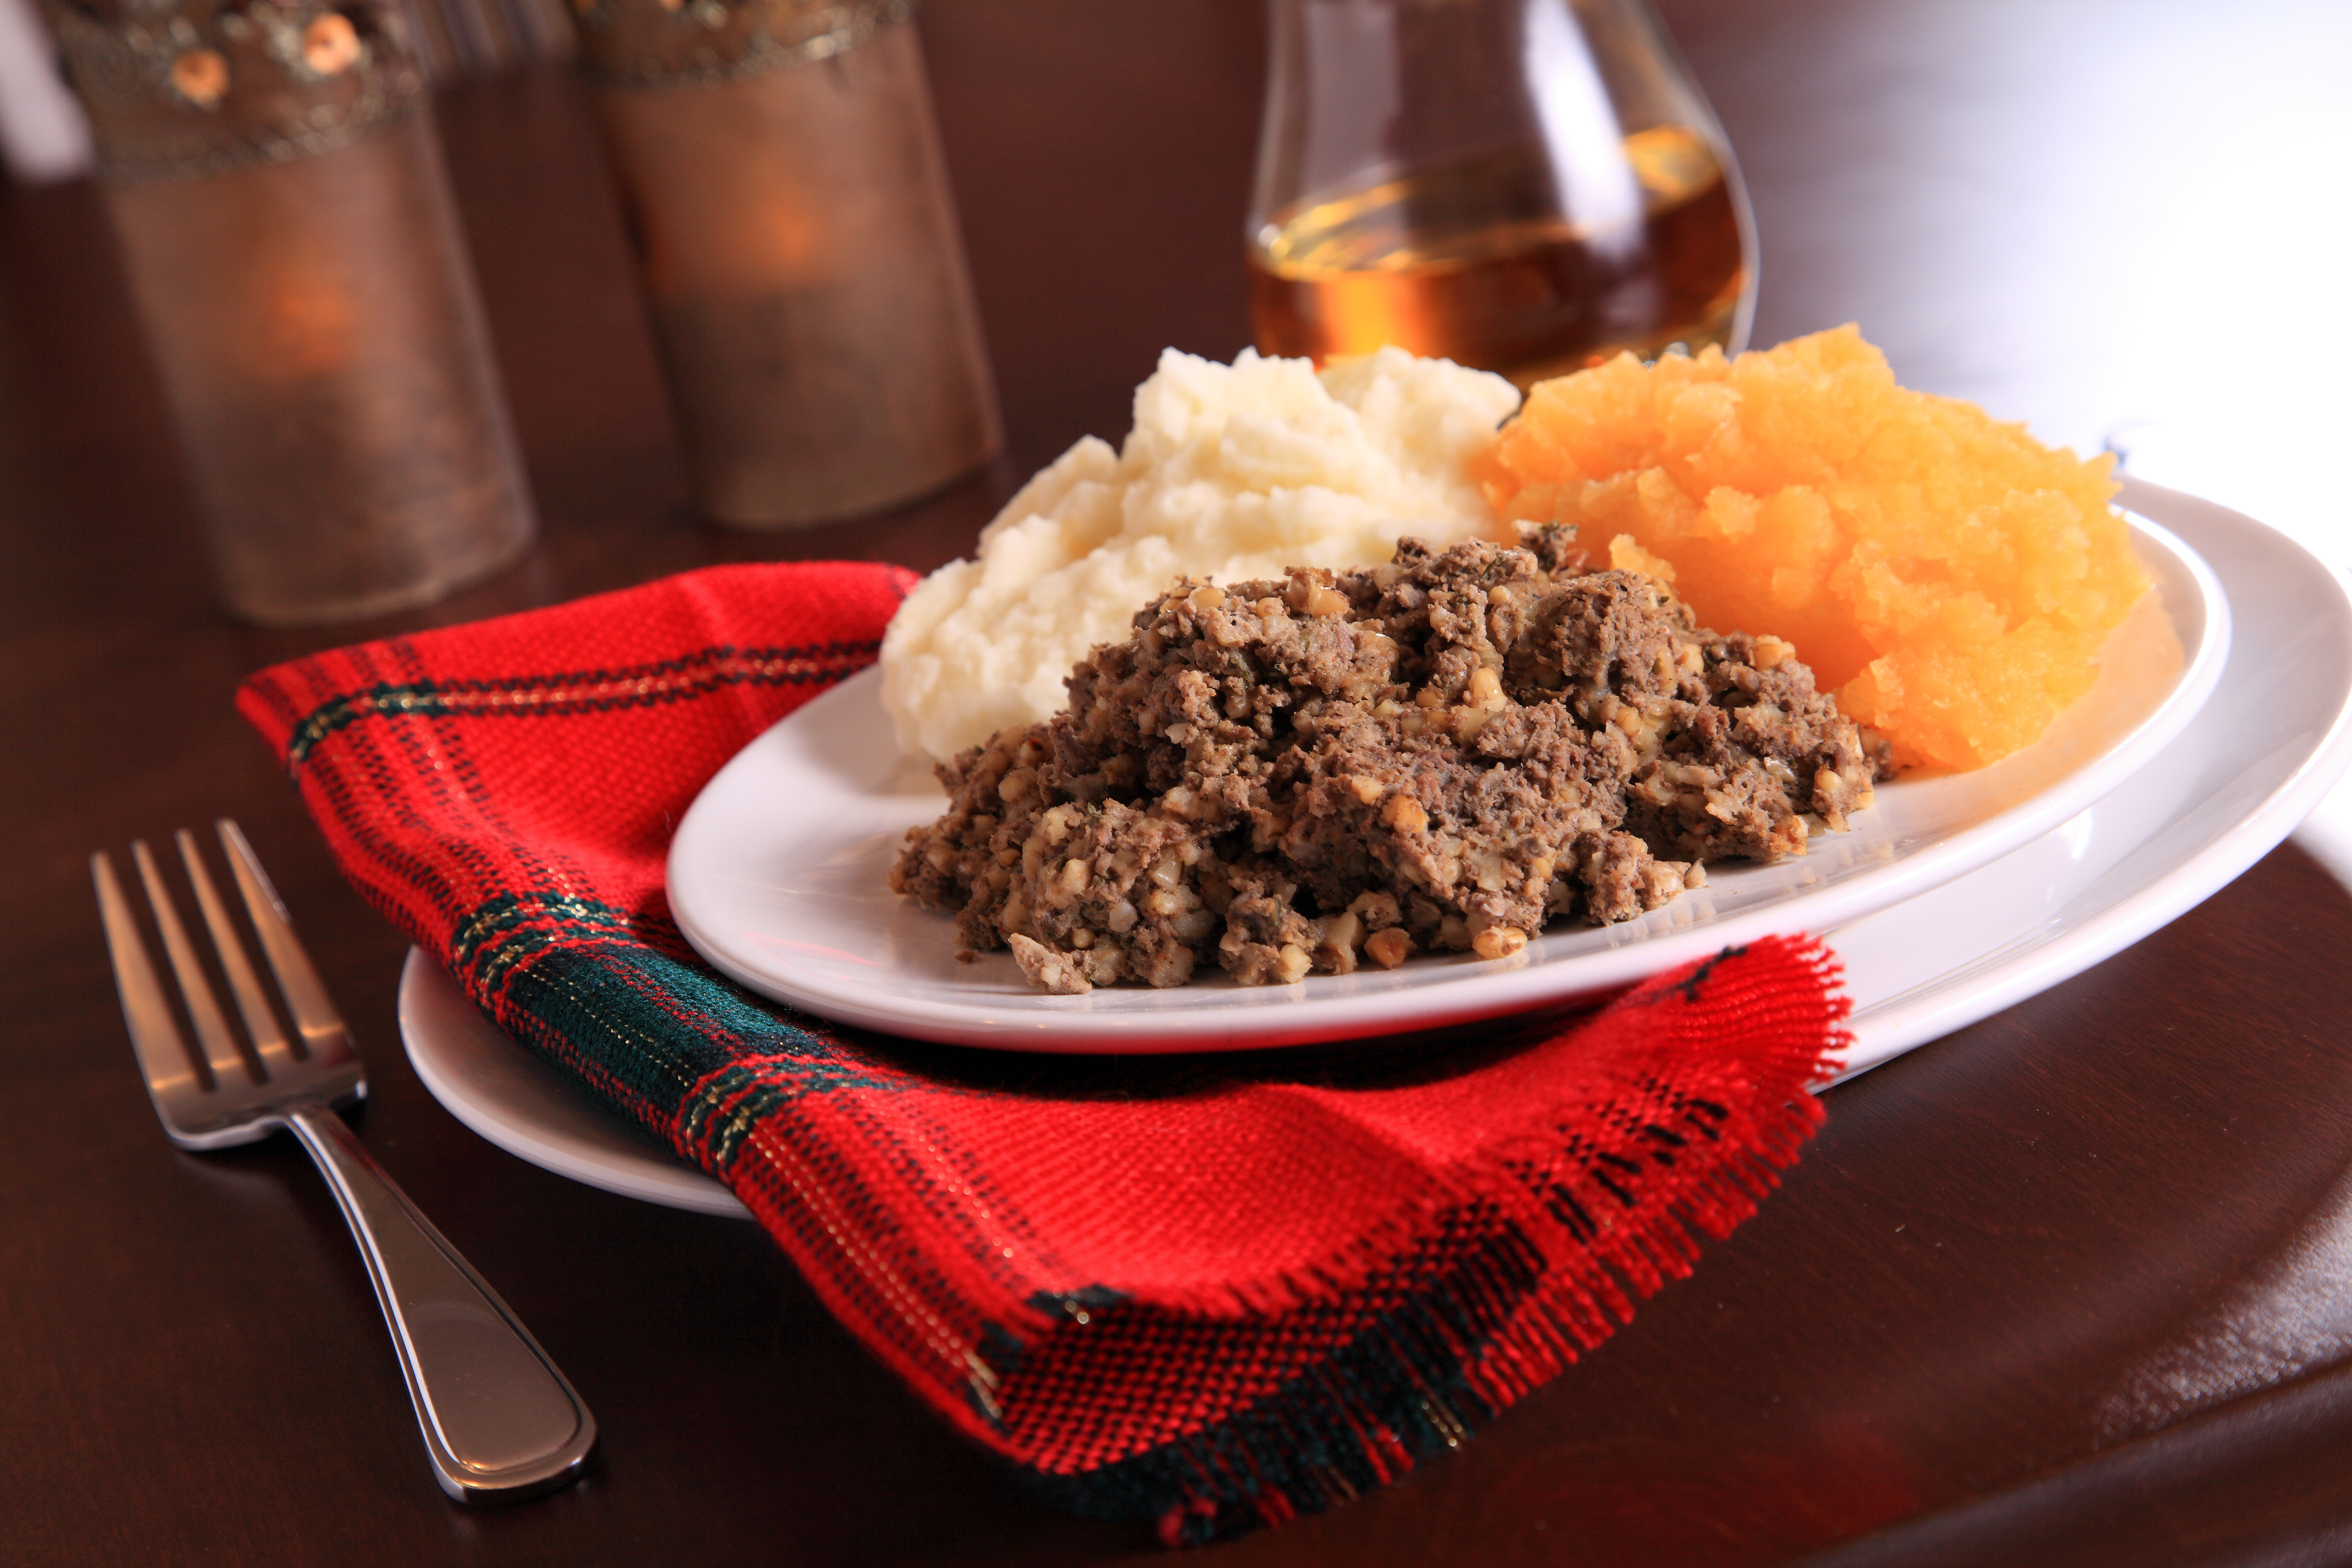 haggis scottish burns night supper table tartan scotland drink dinner stuart setting royal traditional shutterstock napkin guide traditions breakfast celebrate